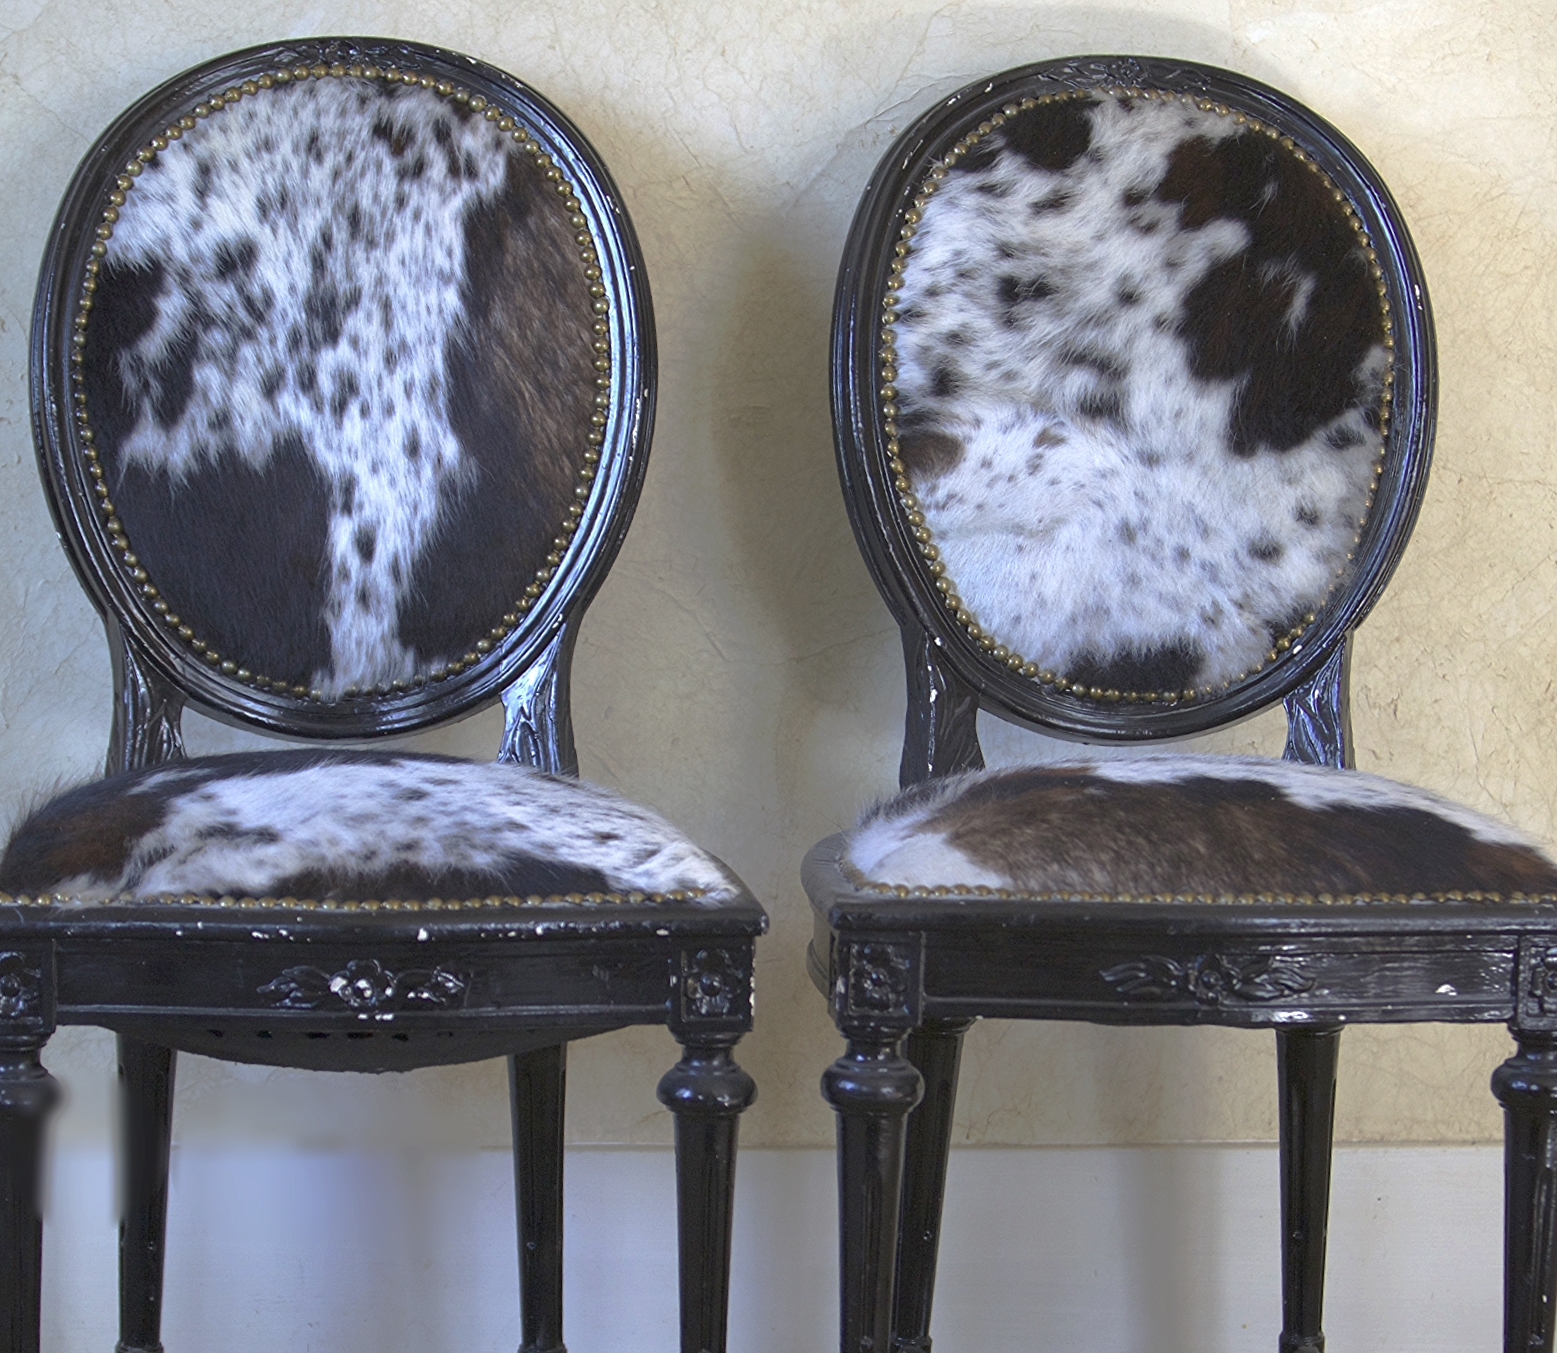 Vintage Cowhide Chairs $75